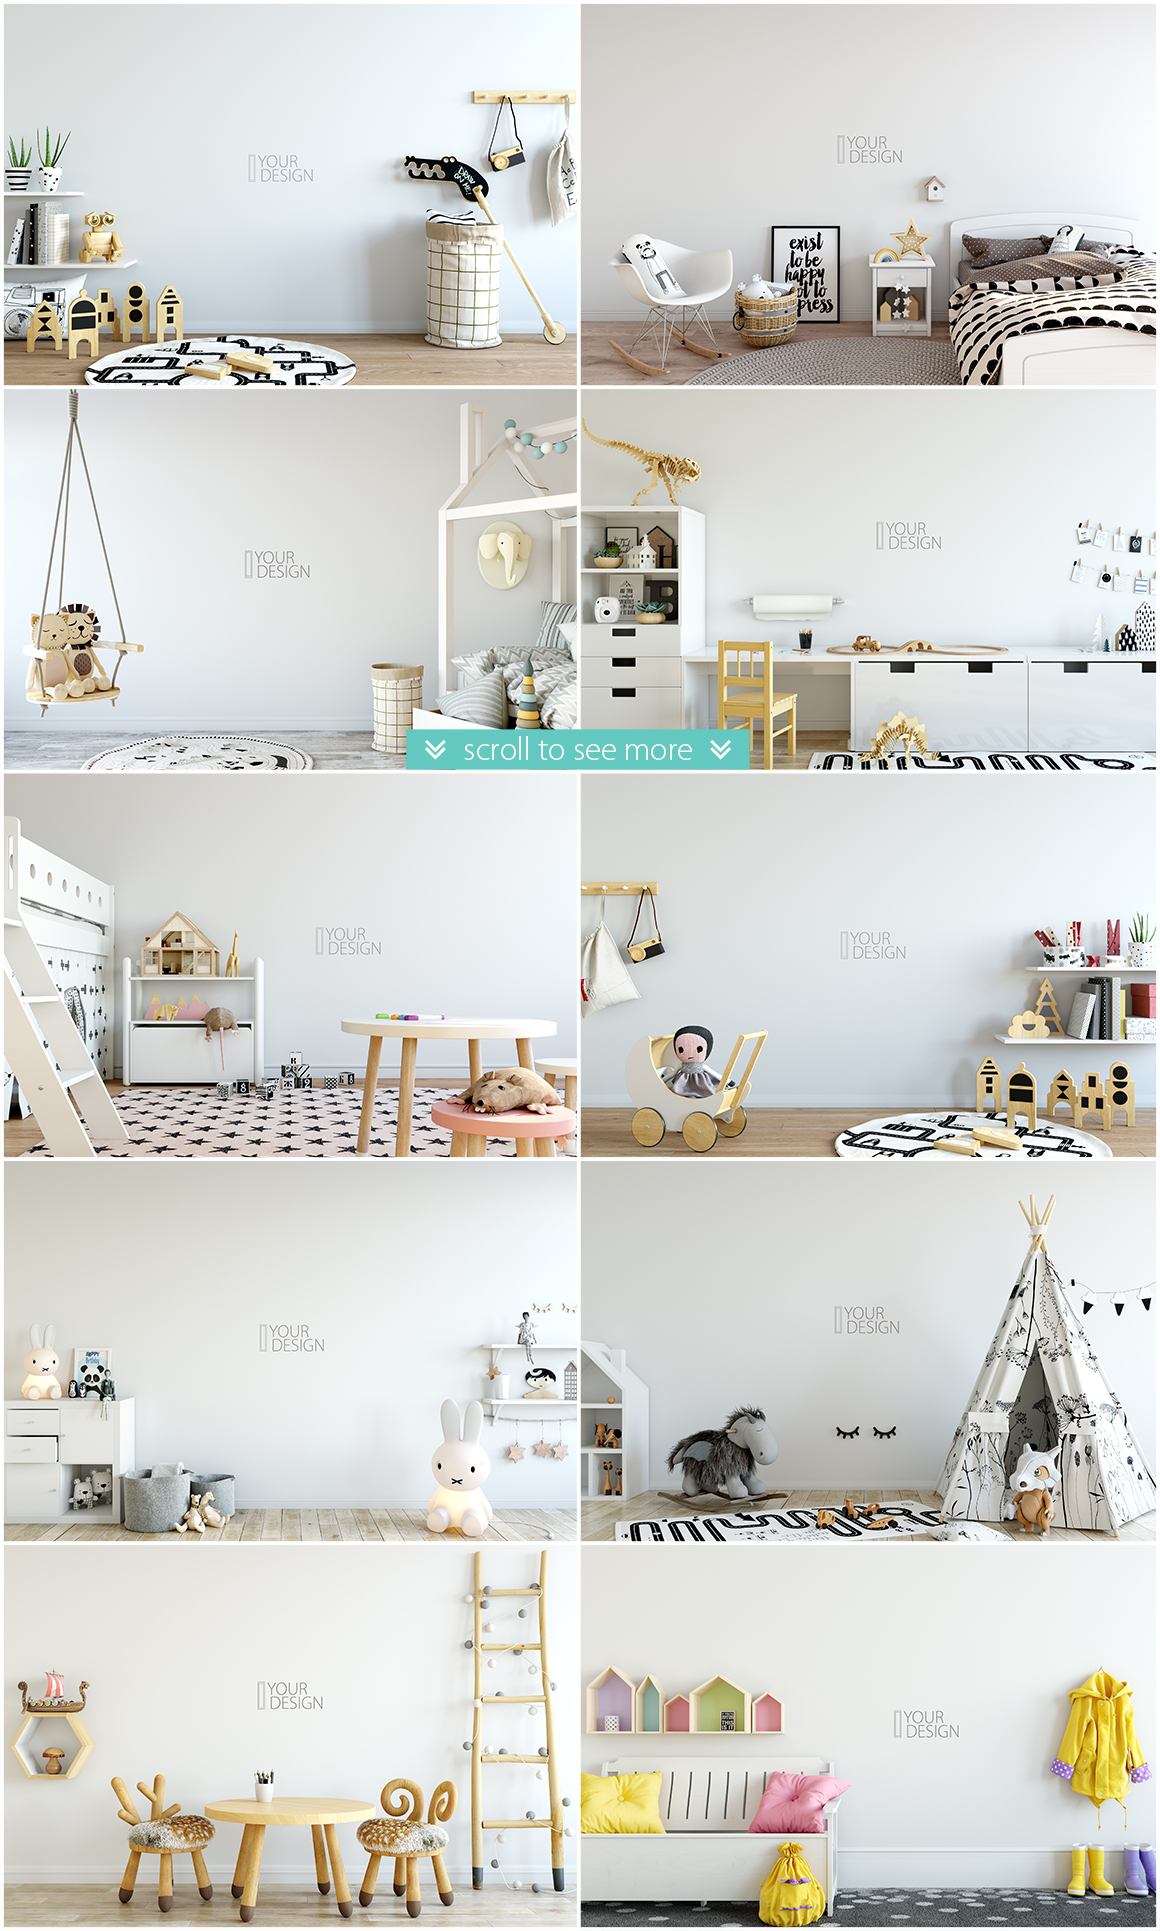 KIDS WALL & FRAMES Mockup Bundle - 2 example image 2